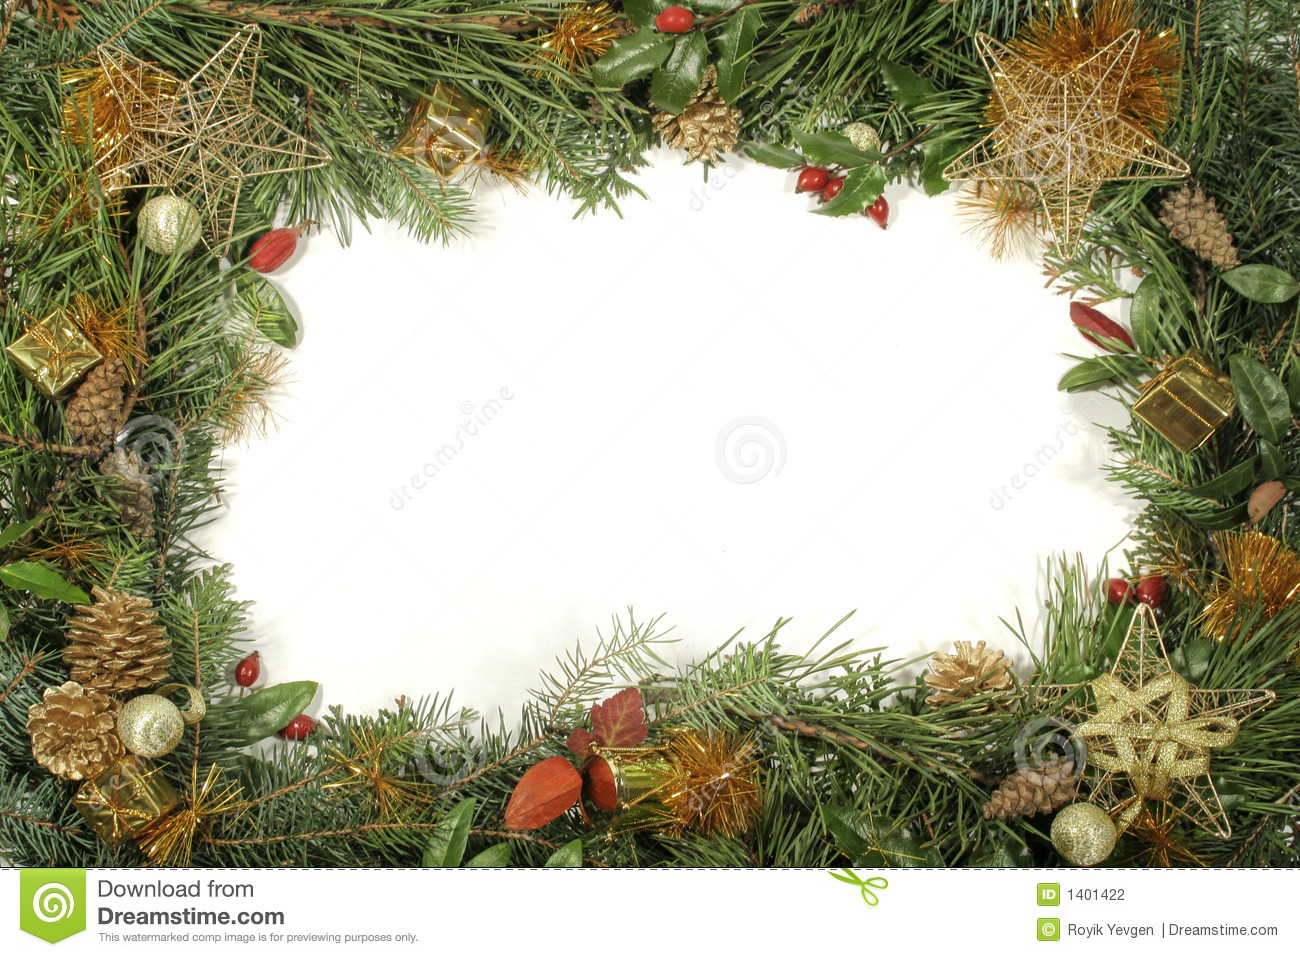 download christmas greenery and decorations stock photo image of greetings pine 1401422 - Christmas Greenery